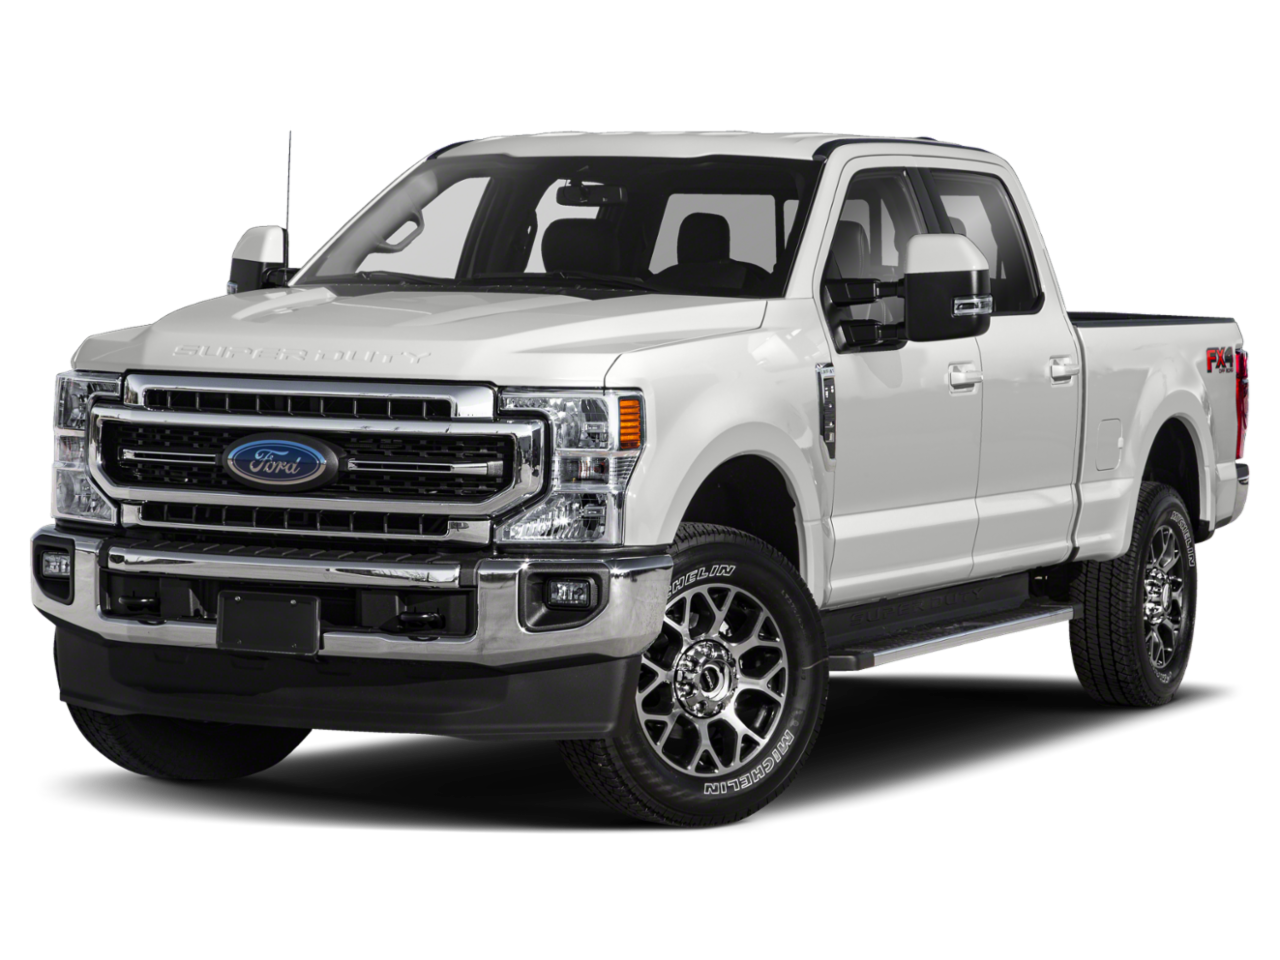 2021 Ford Super Duty F-250 SRW LARIAT Crew Cab Pickup